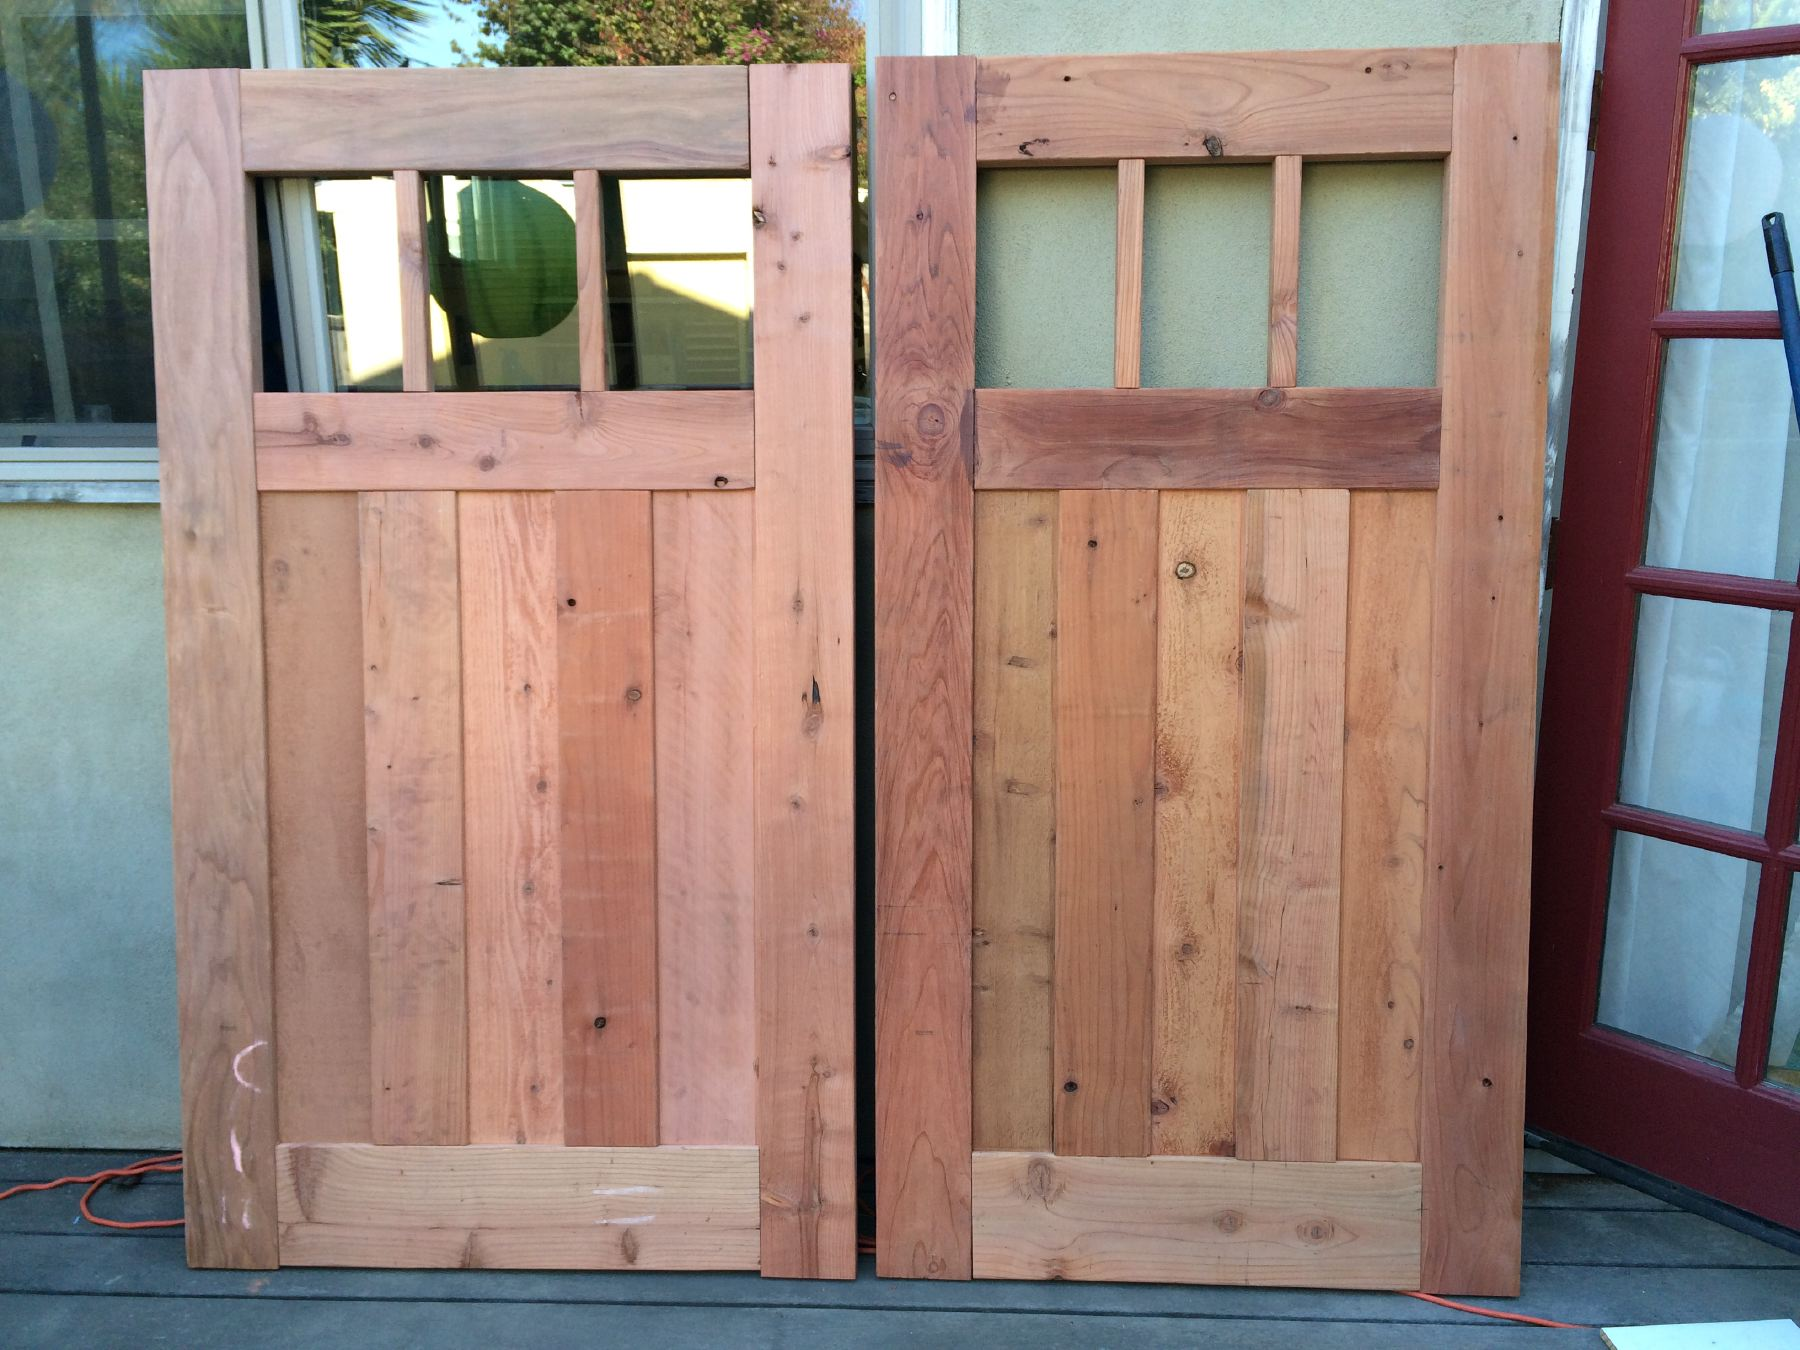 Designing and building a redwood craftsman fence gate for under building redwood craftsman gate baanklon Image collections